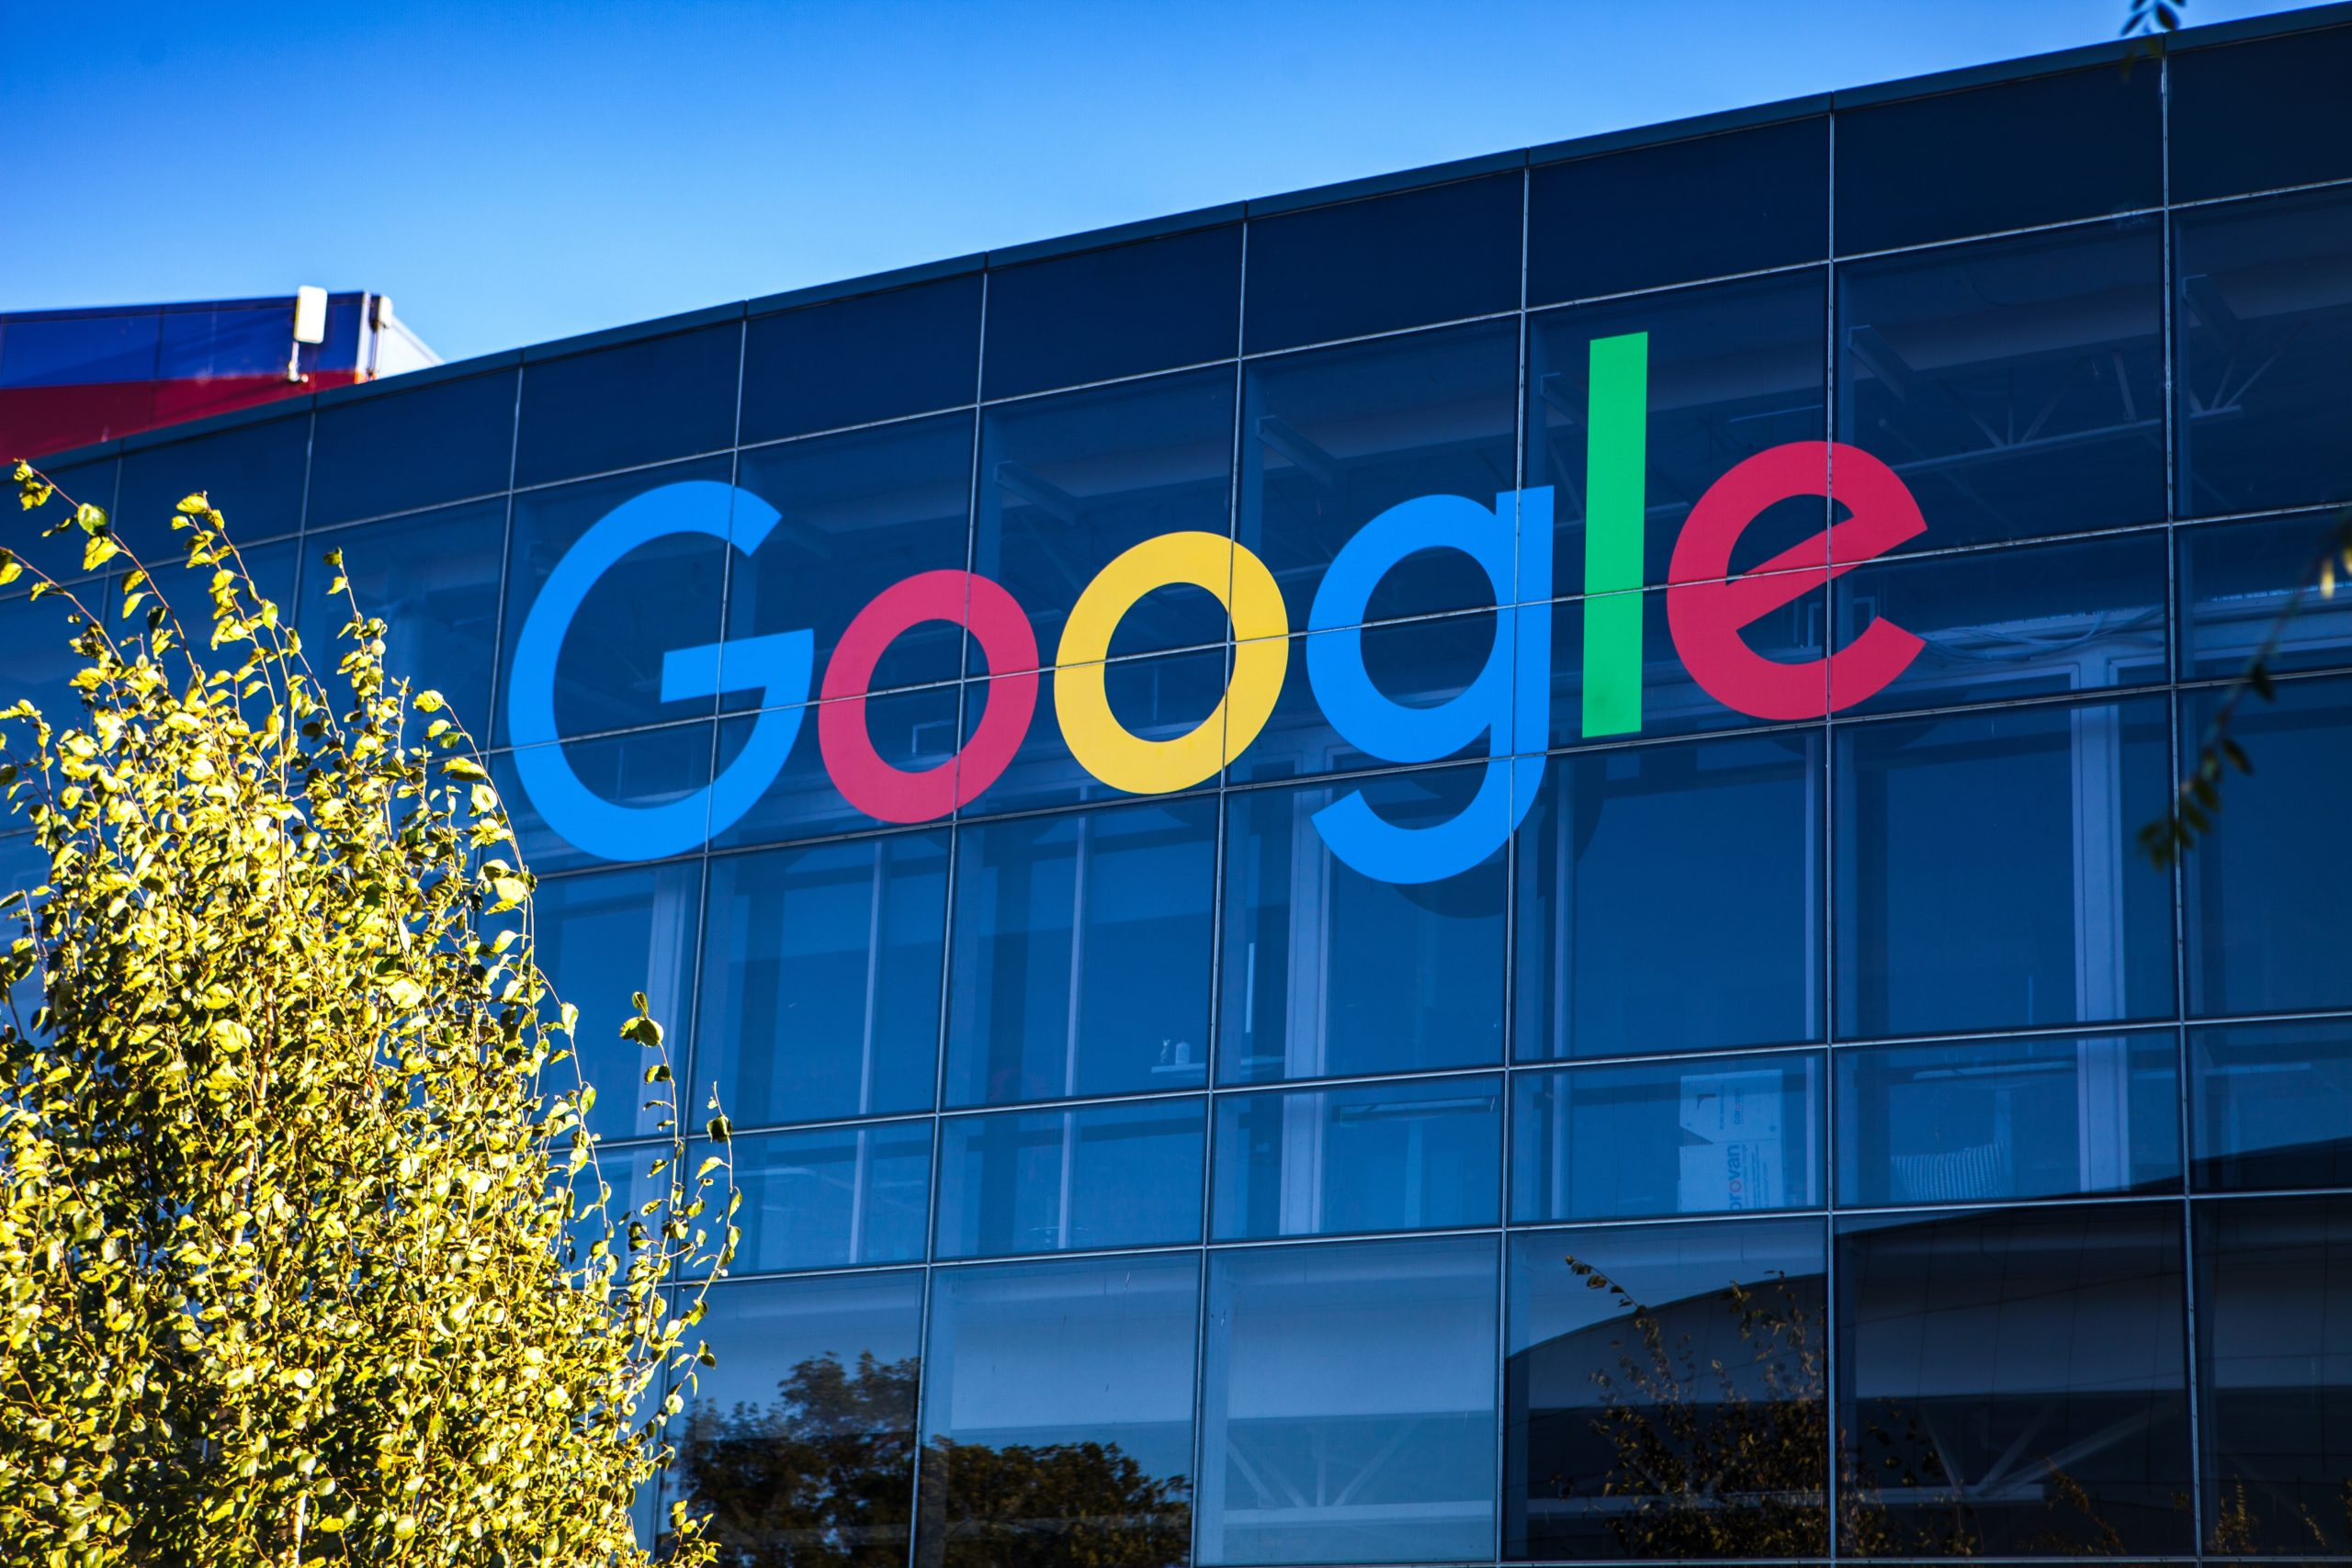 Google to Invest $1 Billion to Improve Internet Access for Africa - Newslibre